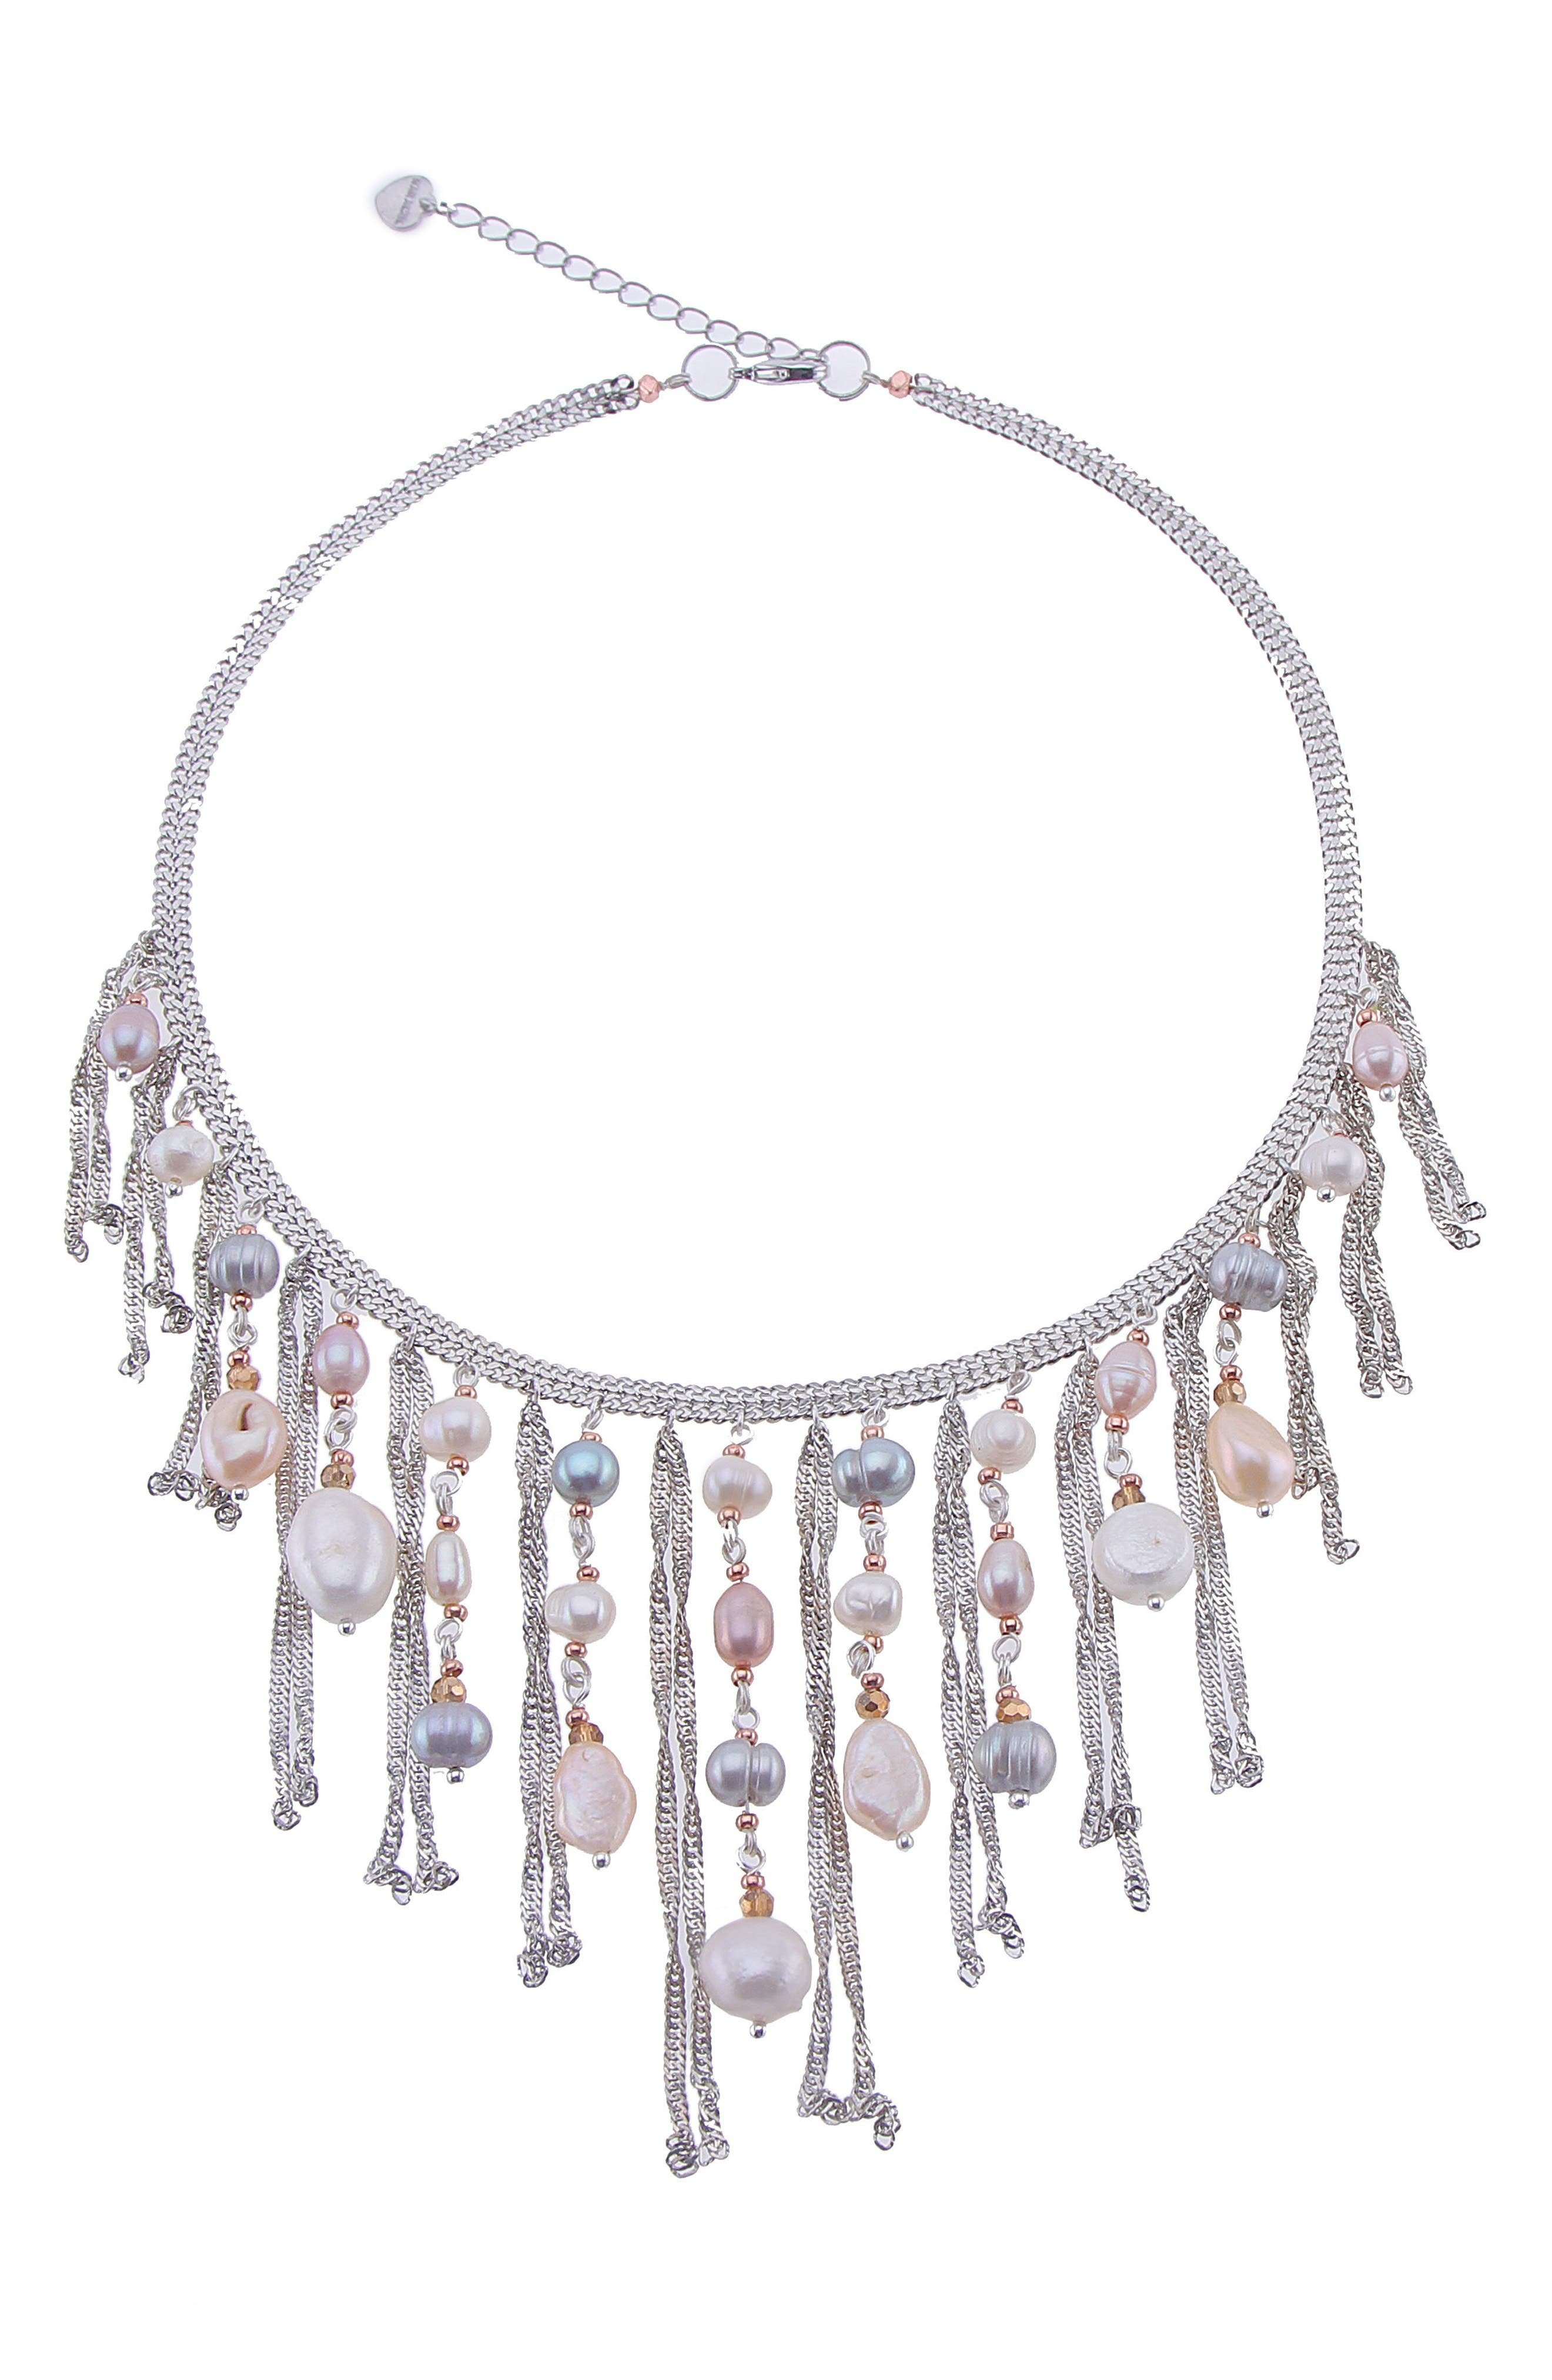 Freshwater Pearl & Chain Fringe Bib Necklace,                         Main,                         color, 100